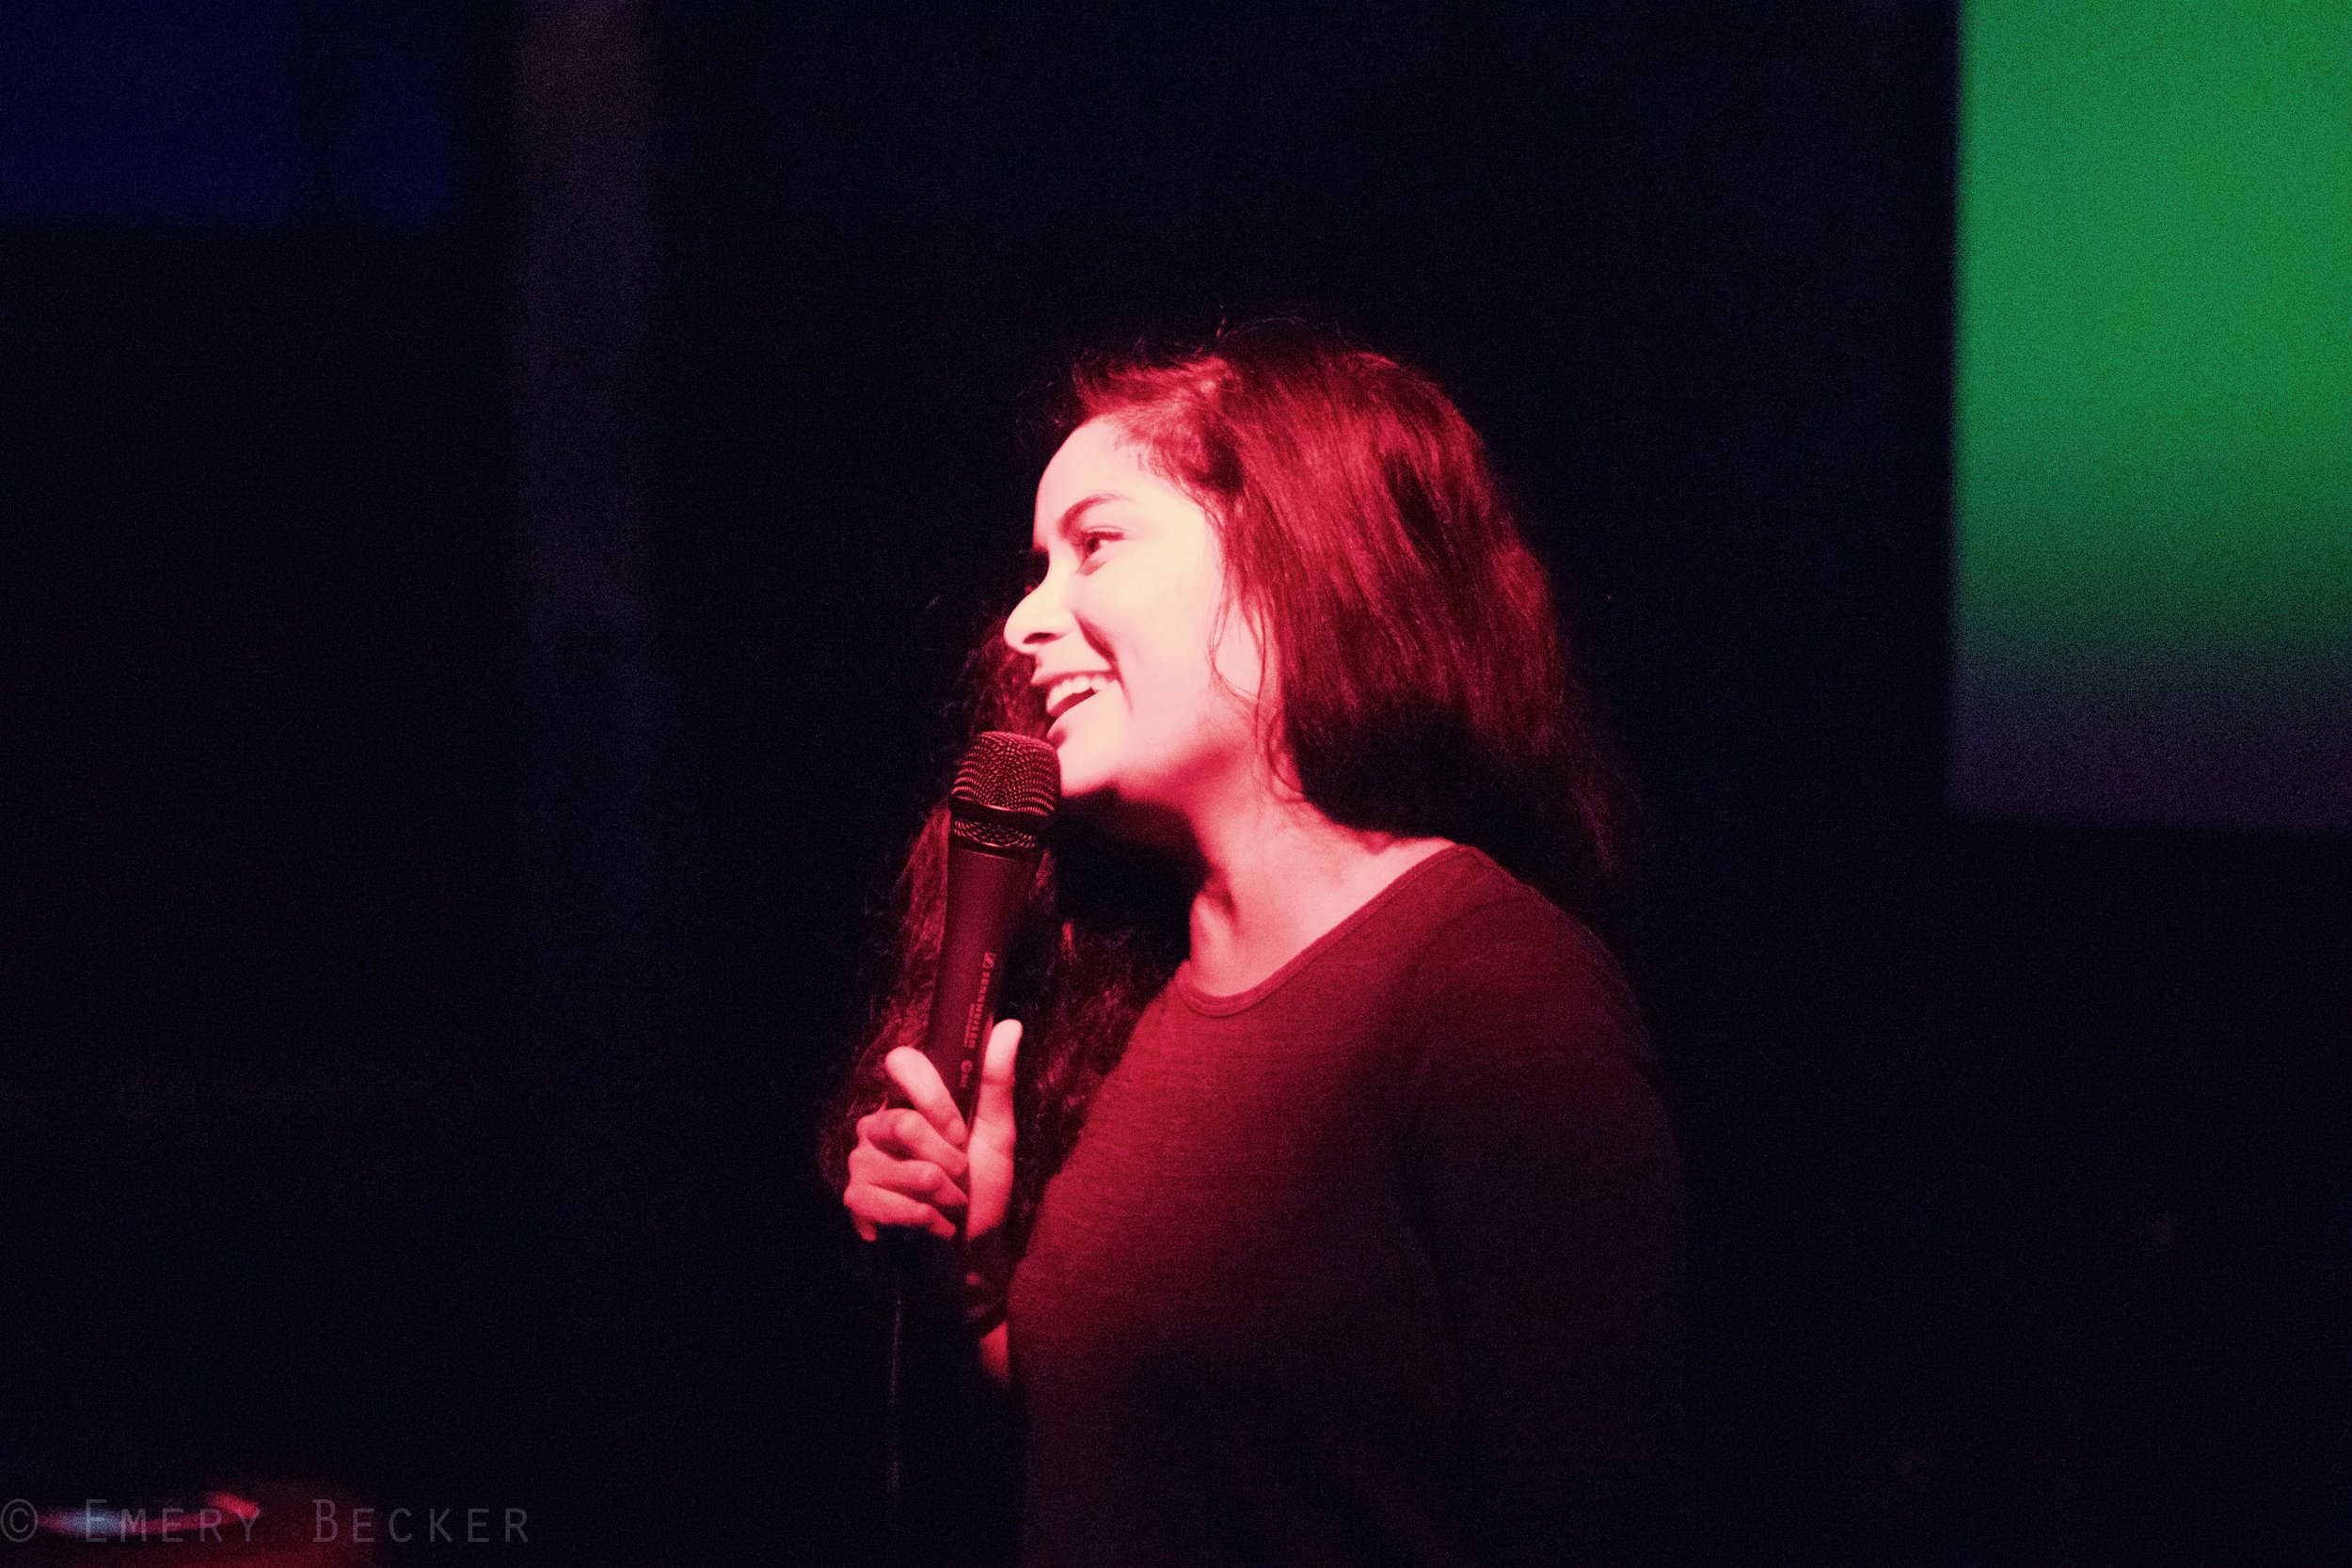 Christine Medrano  at a  ROVE  show at  The Reserve , Summer 2016. Photo by  Emery Becker .